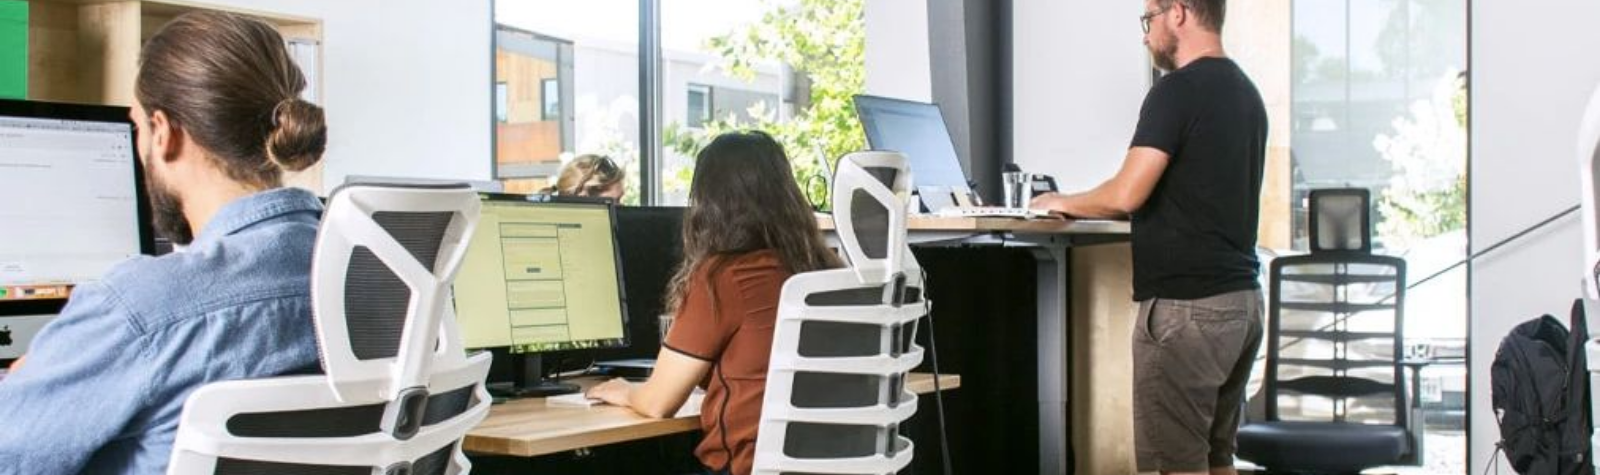 A Standing Desk: How to Select the Right One